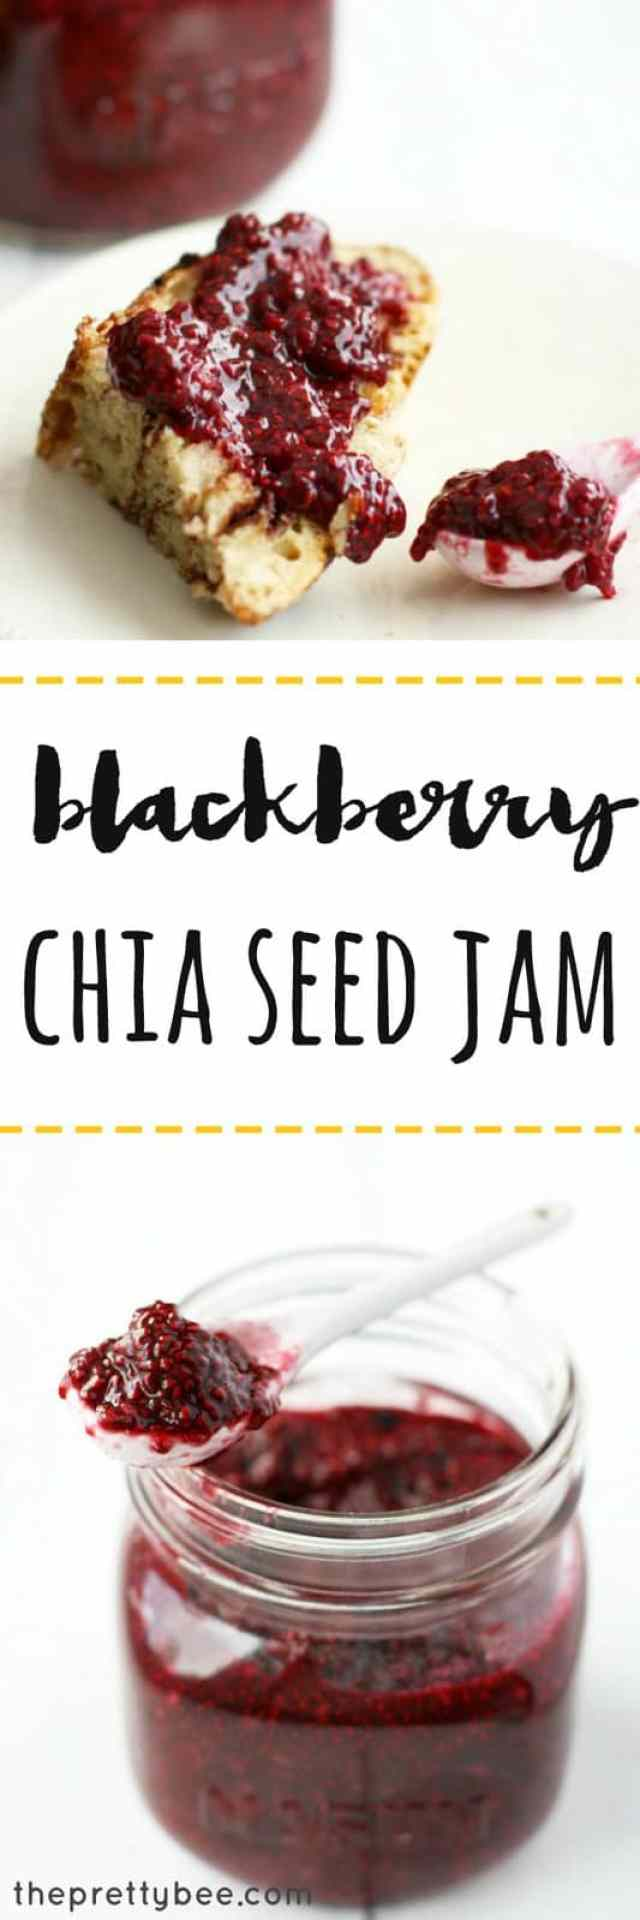 Easy and delicious blackberry chia seed jam recipe! A delicious way to make jam.